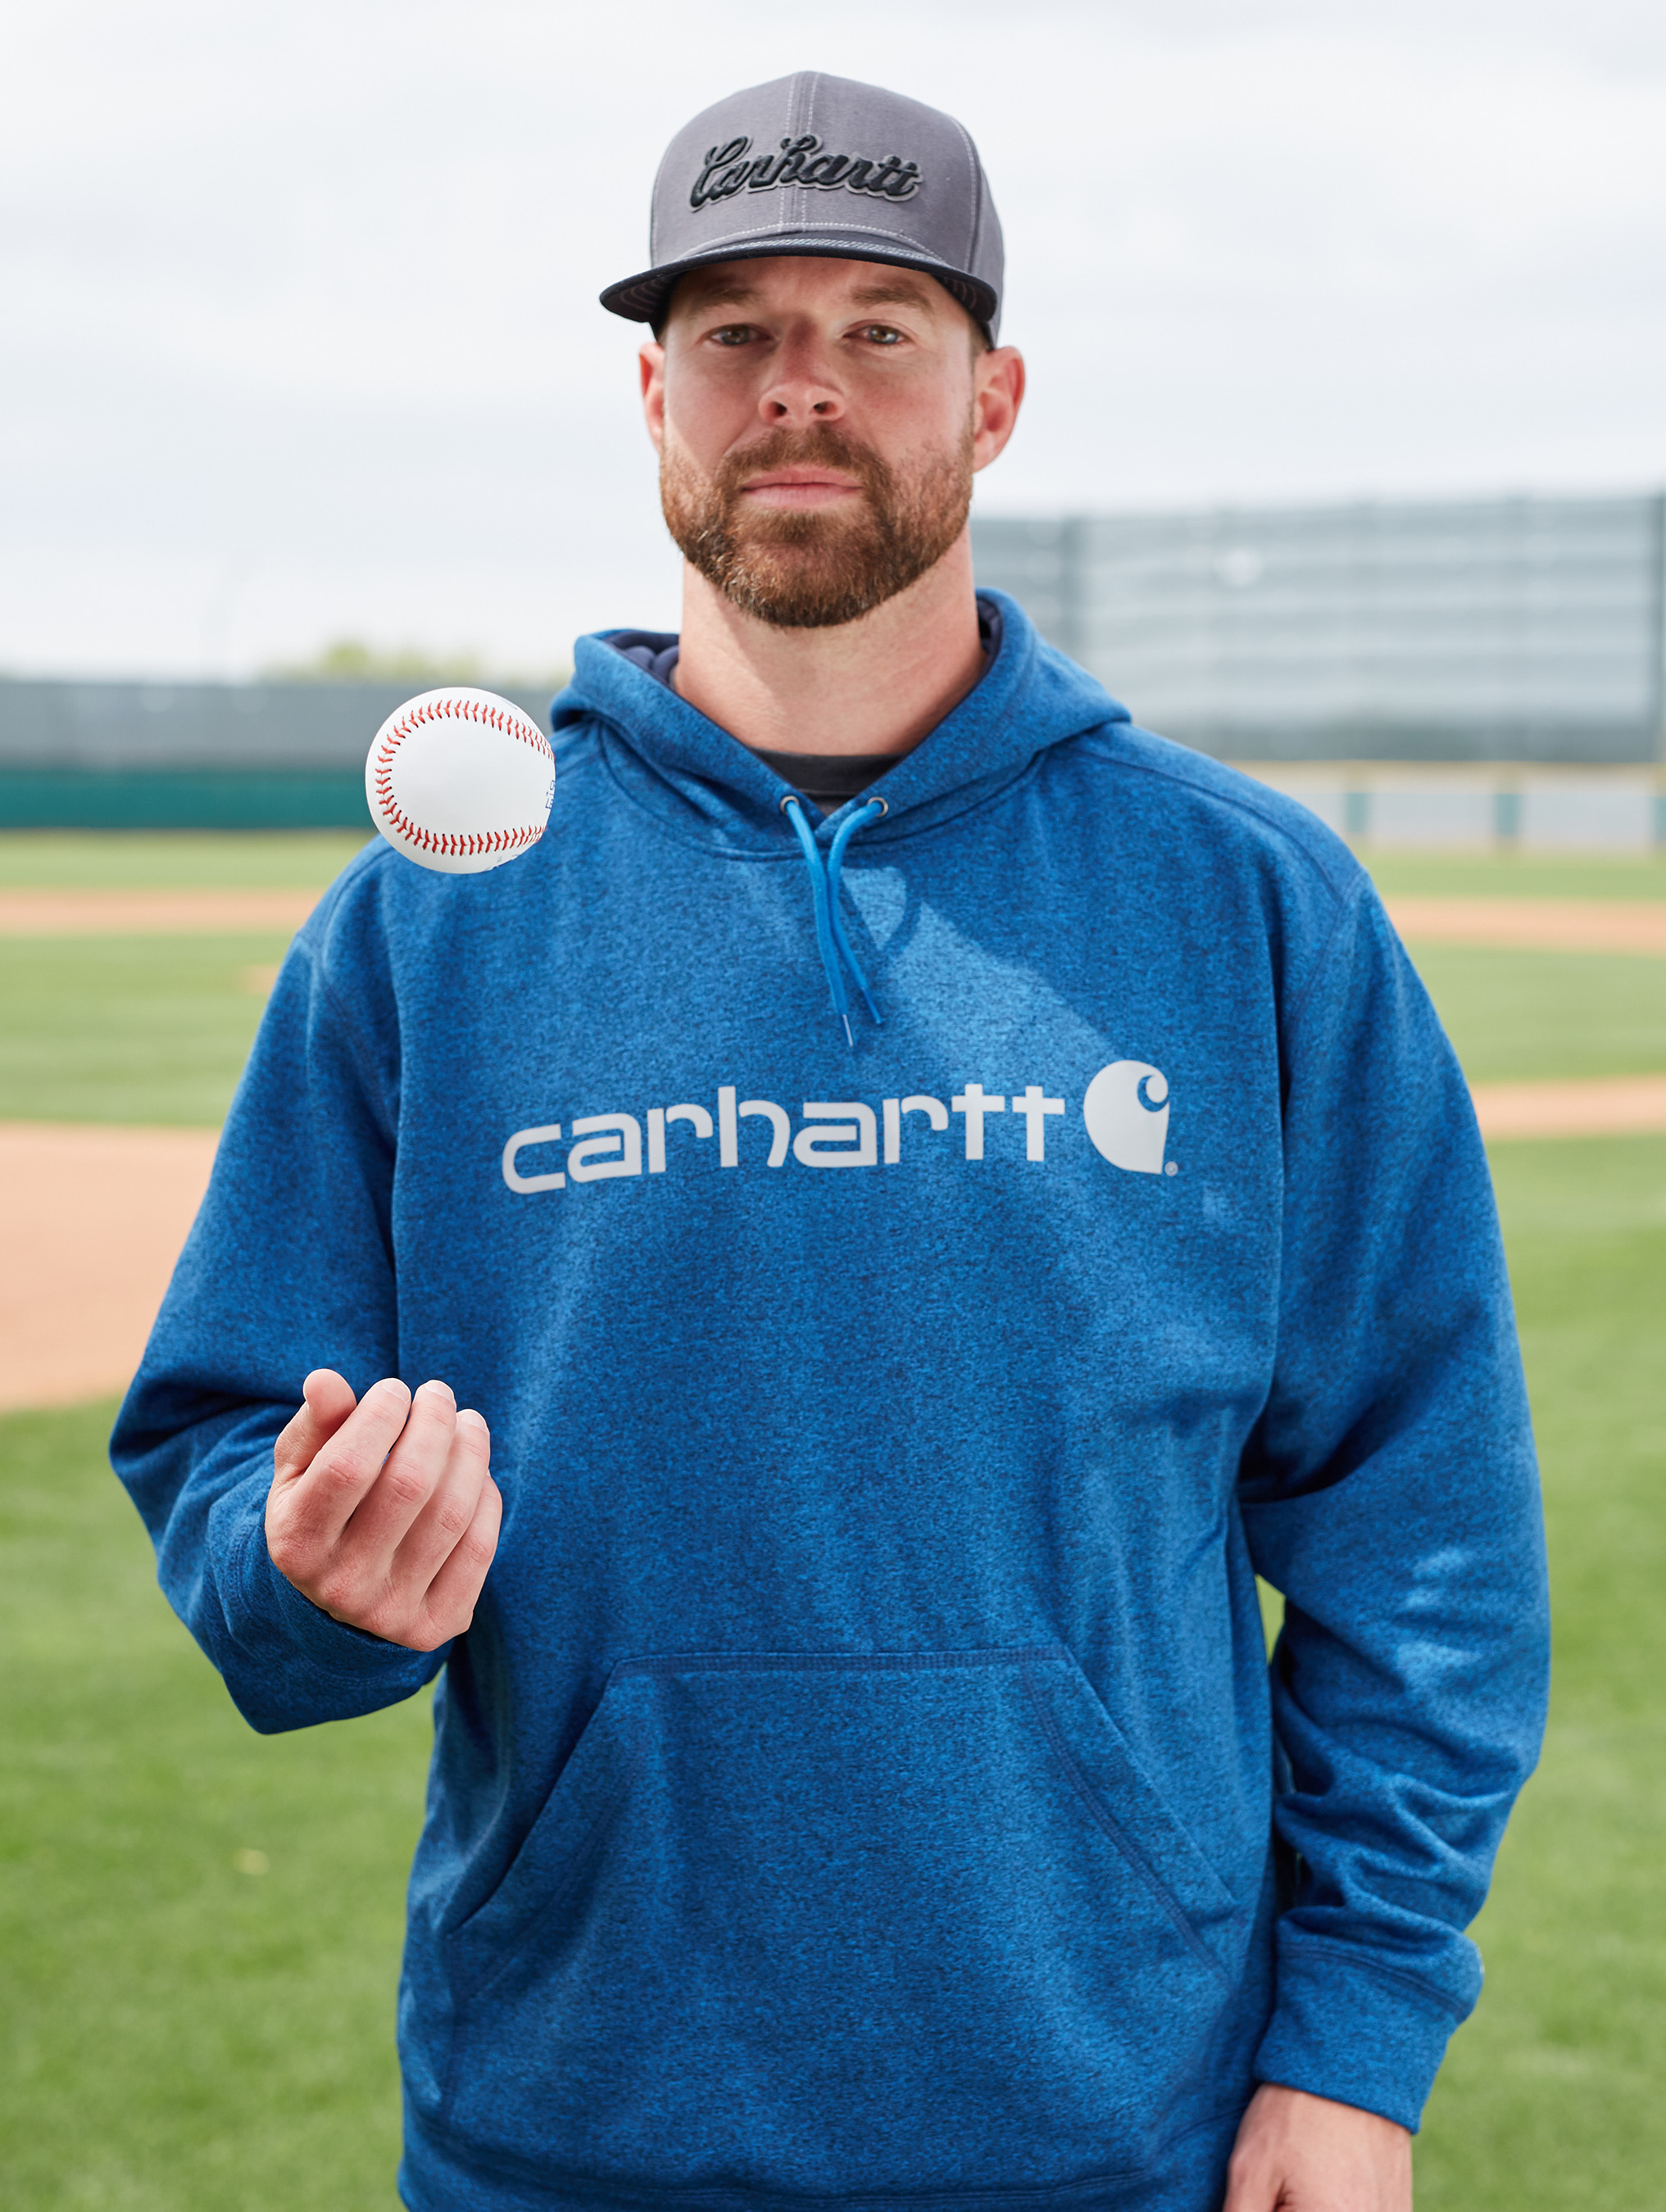 As a member of the 2017 Carhartt Starting Rotation, Corey Kluber will help support Helmets to Hardhats by raising $100 for the organization for each strikeout he records during the 2017 baseball season.